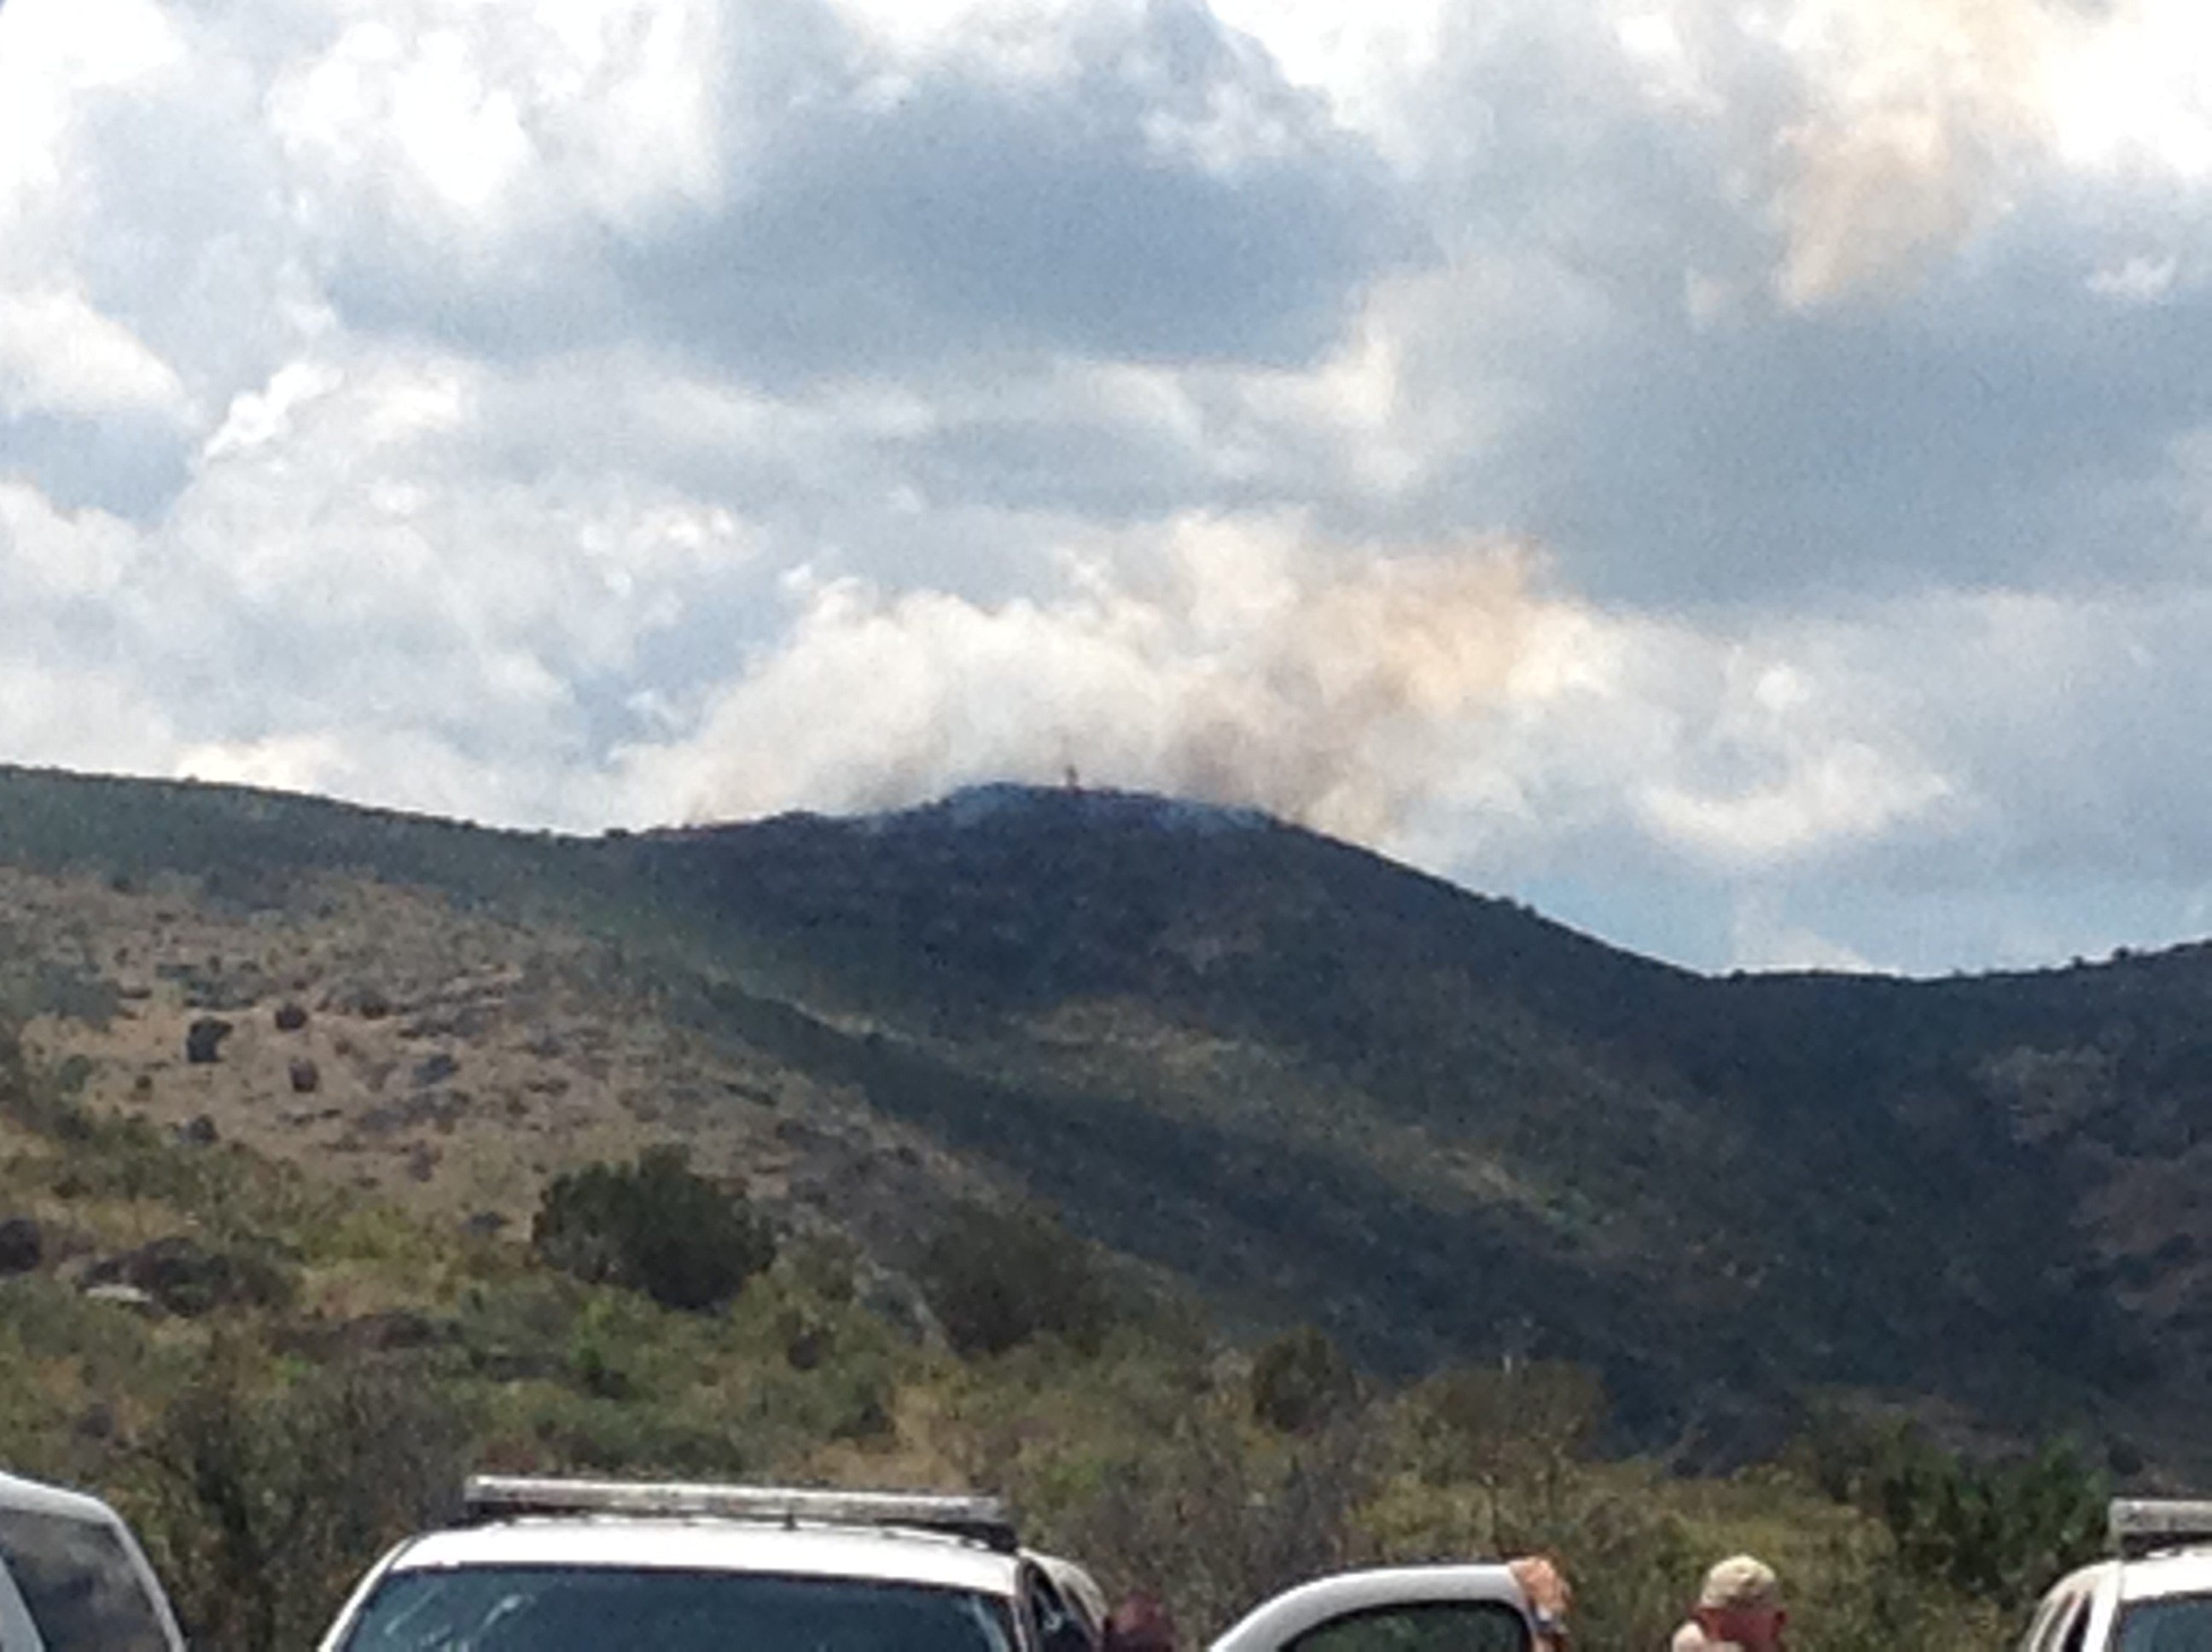 Mule Fire just outside Mayer, AZ.